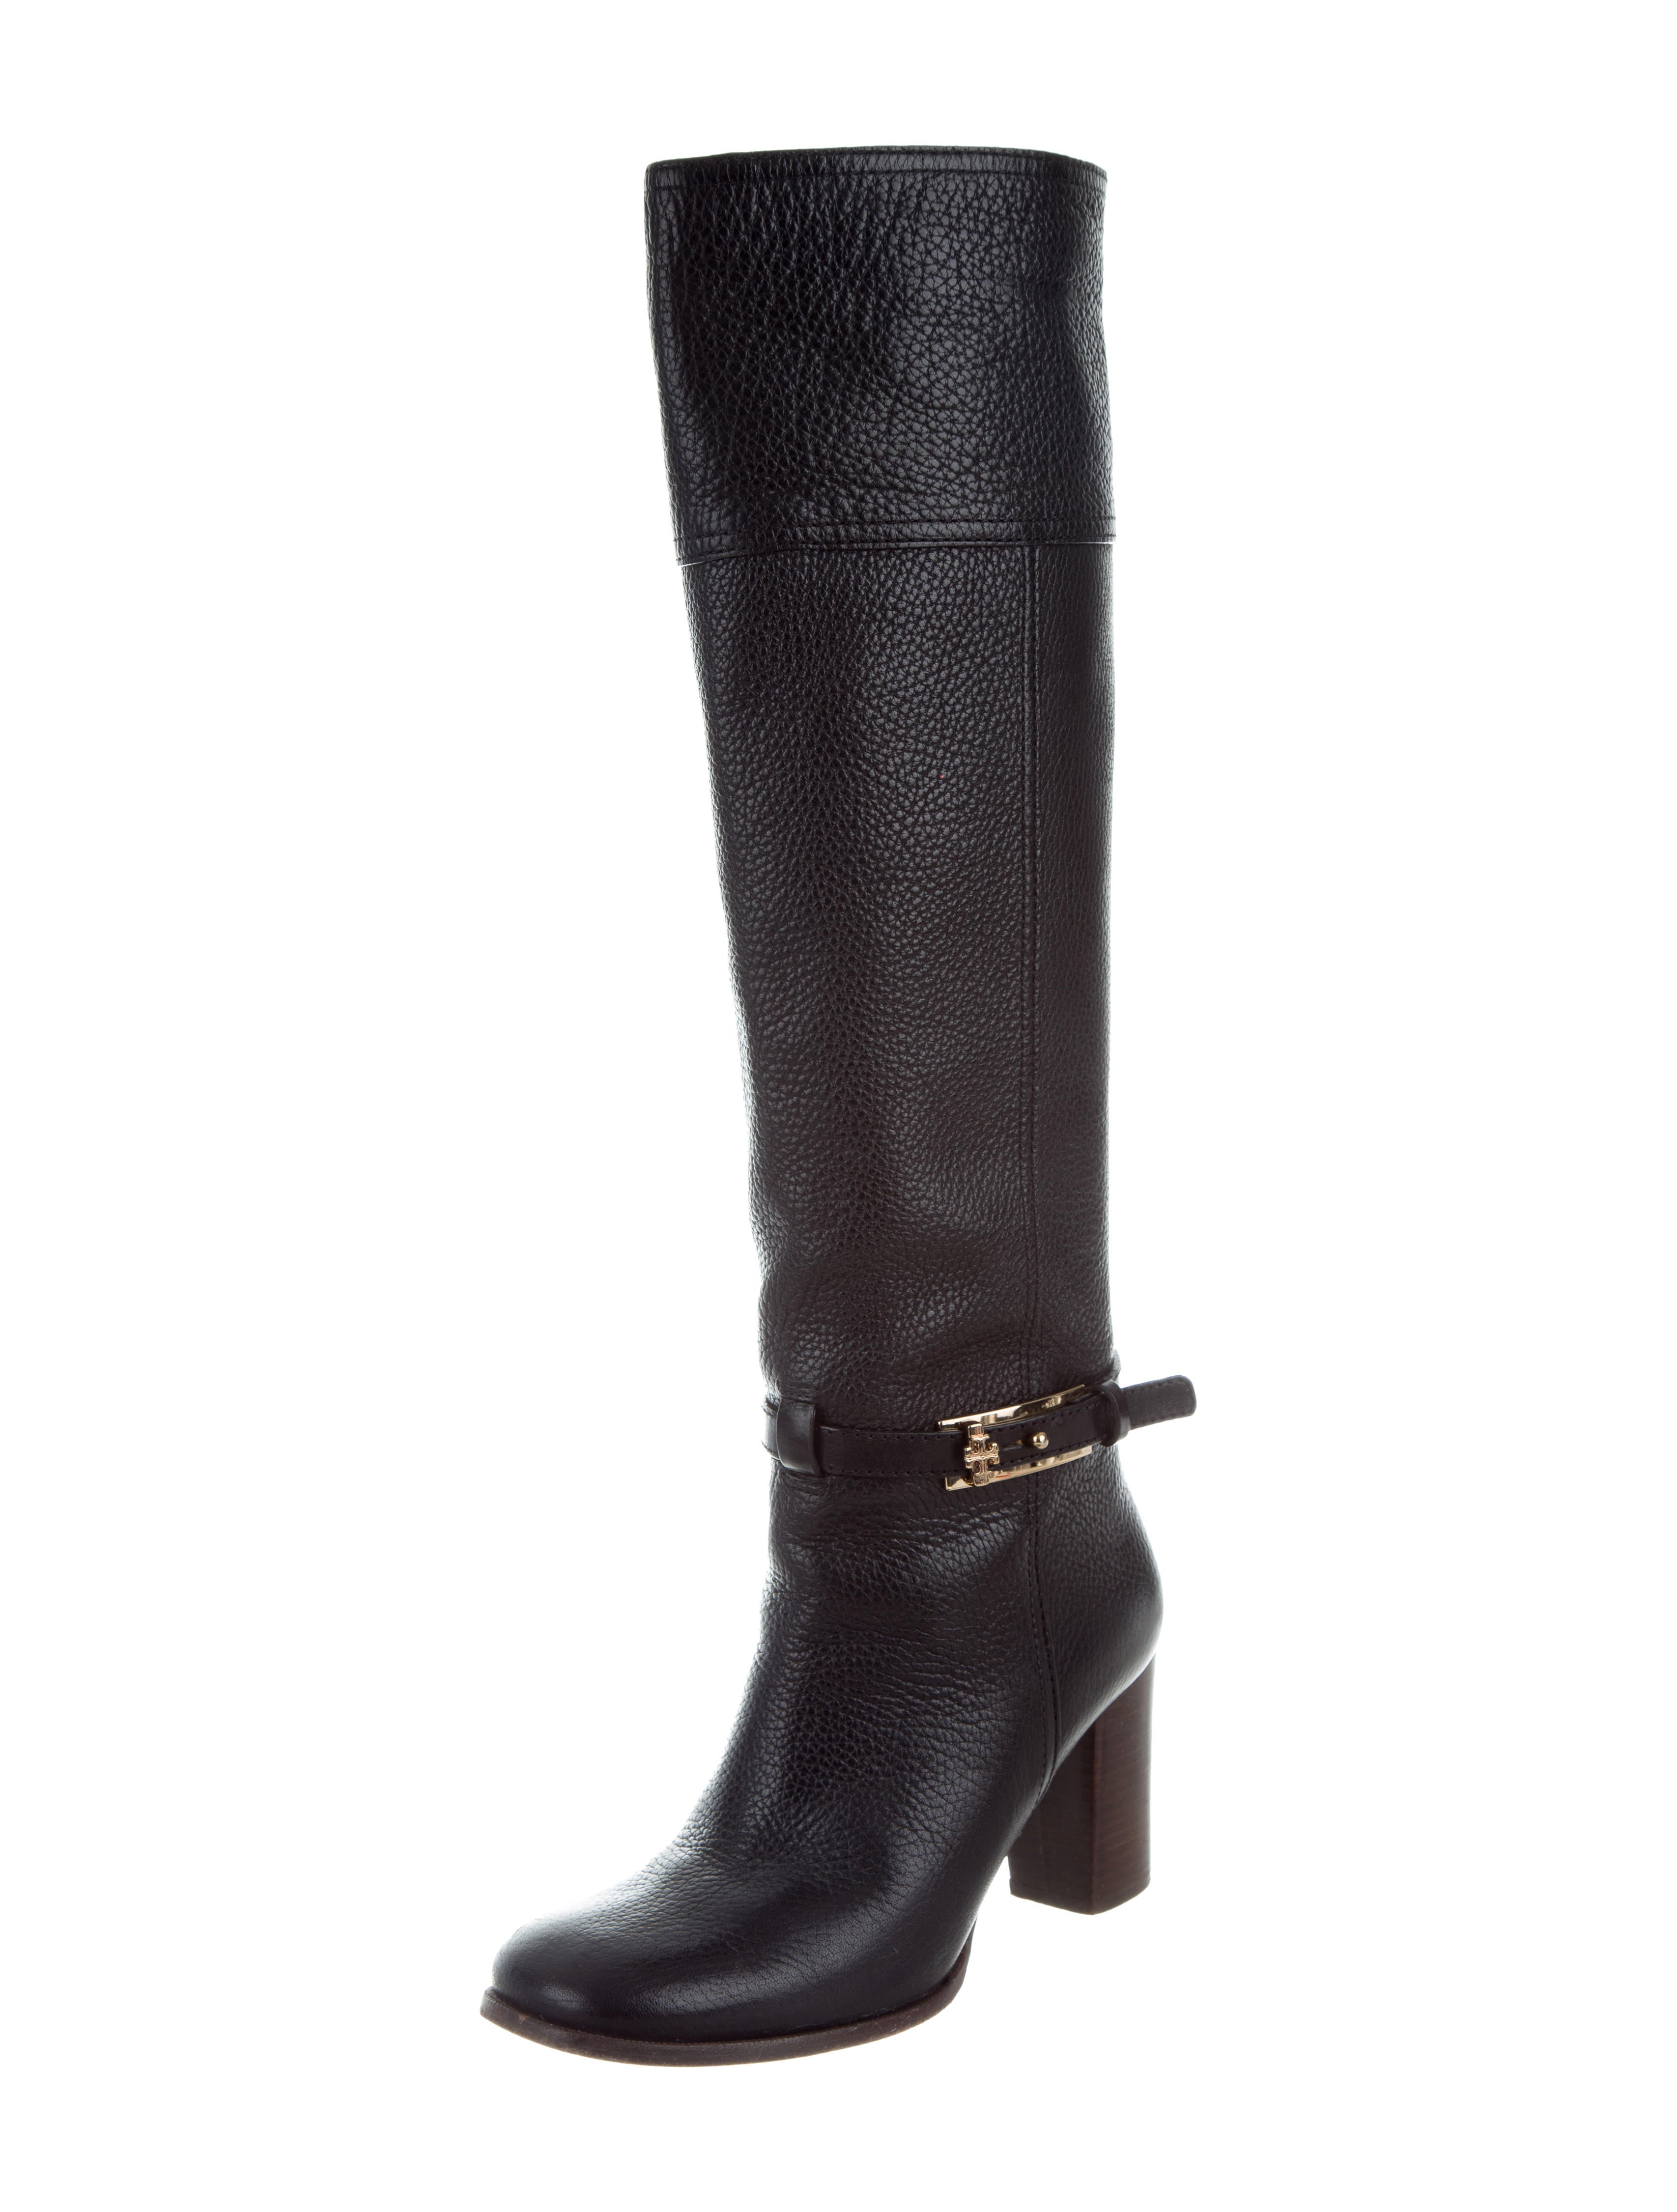 Tory Burch Leather Logo Knee-High Booots sale comfortable cheap good selling outlet cheap quality ddDMtHeMA